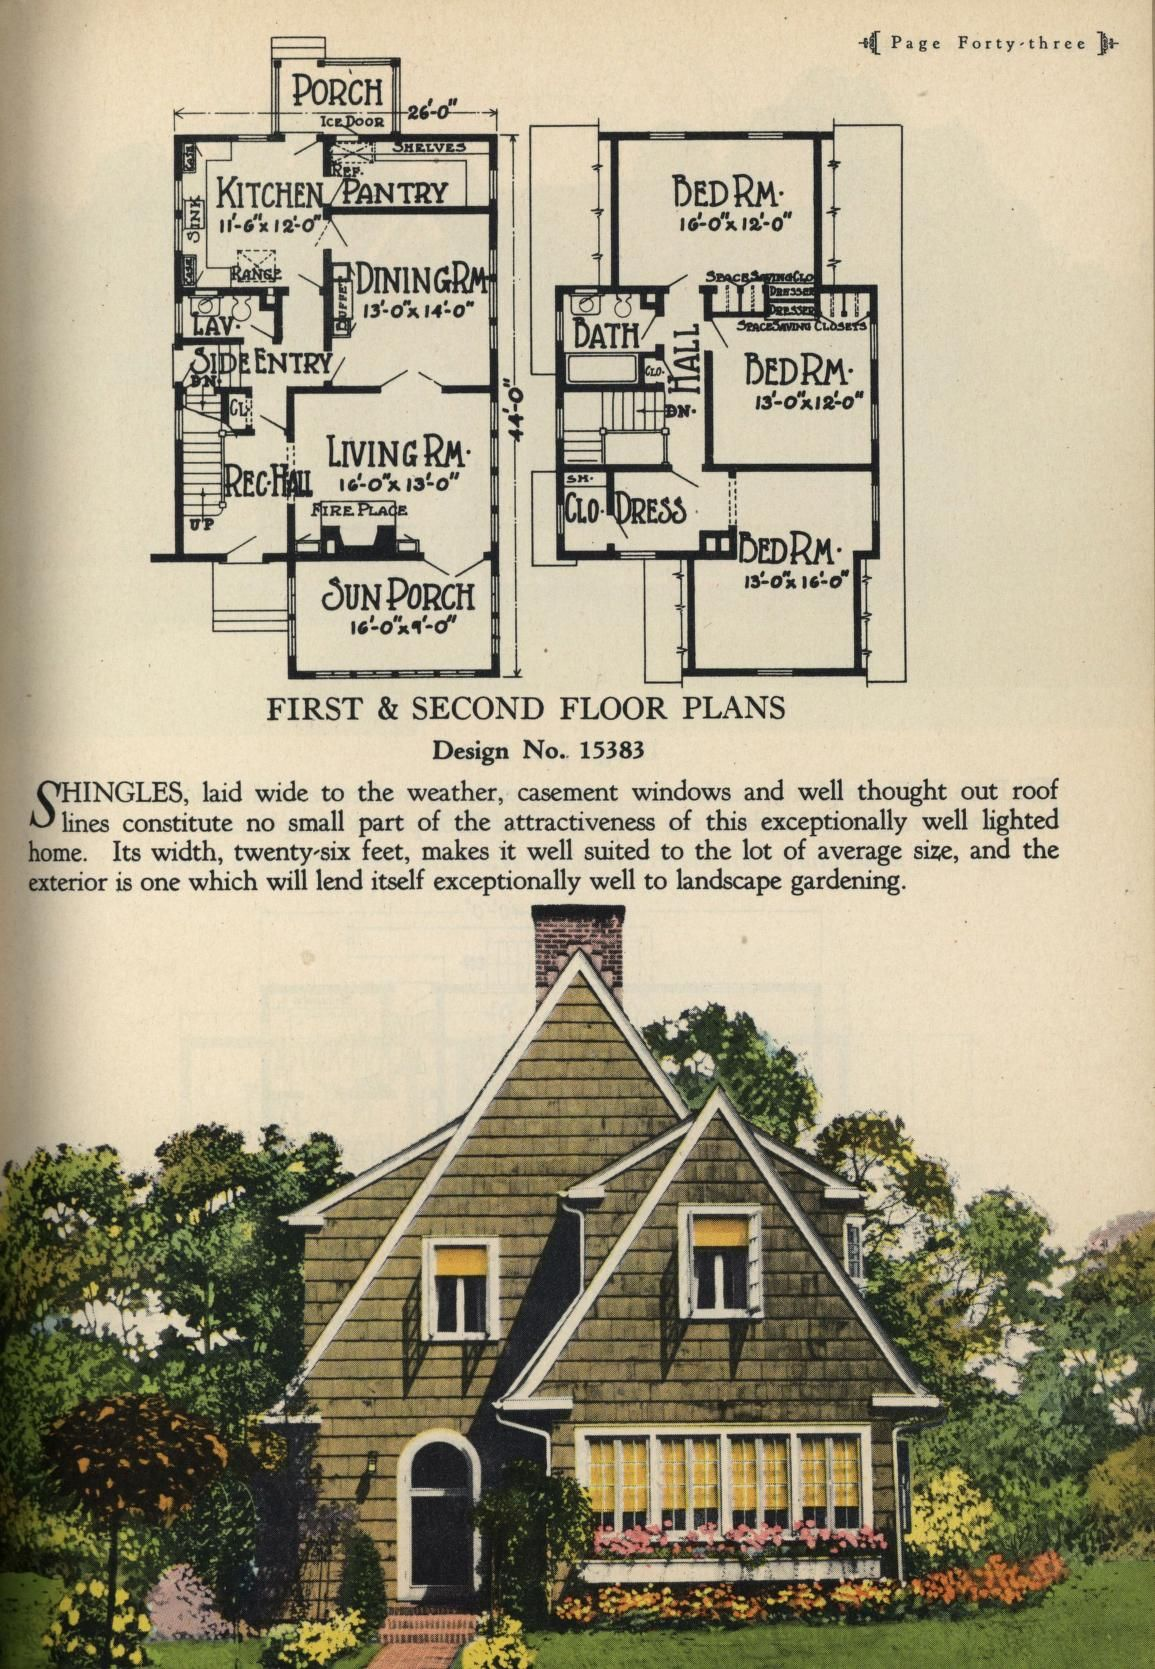 Artistic Homes Build A Home First Vintage House Plans House Blueprints Craftsman House Plans